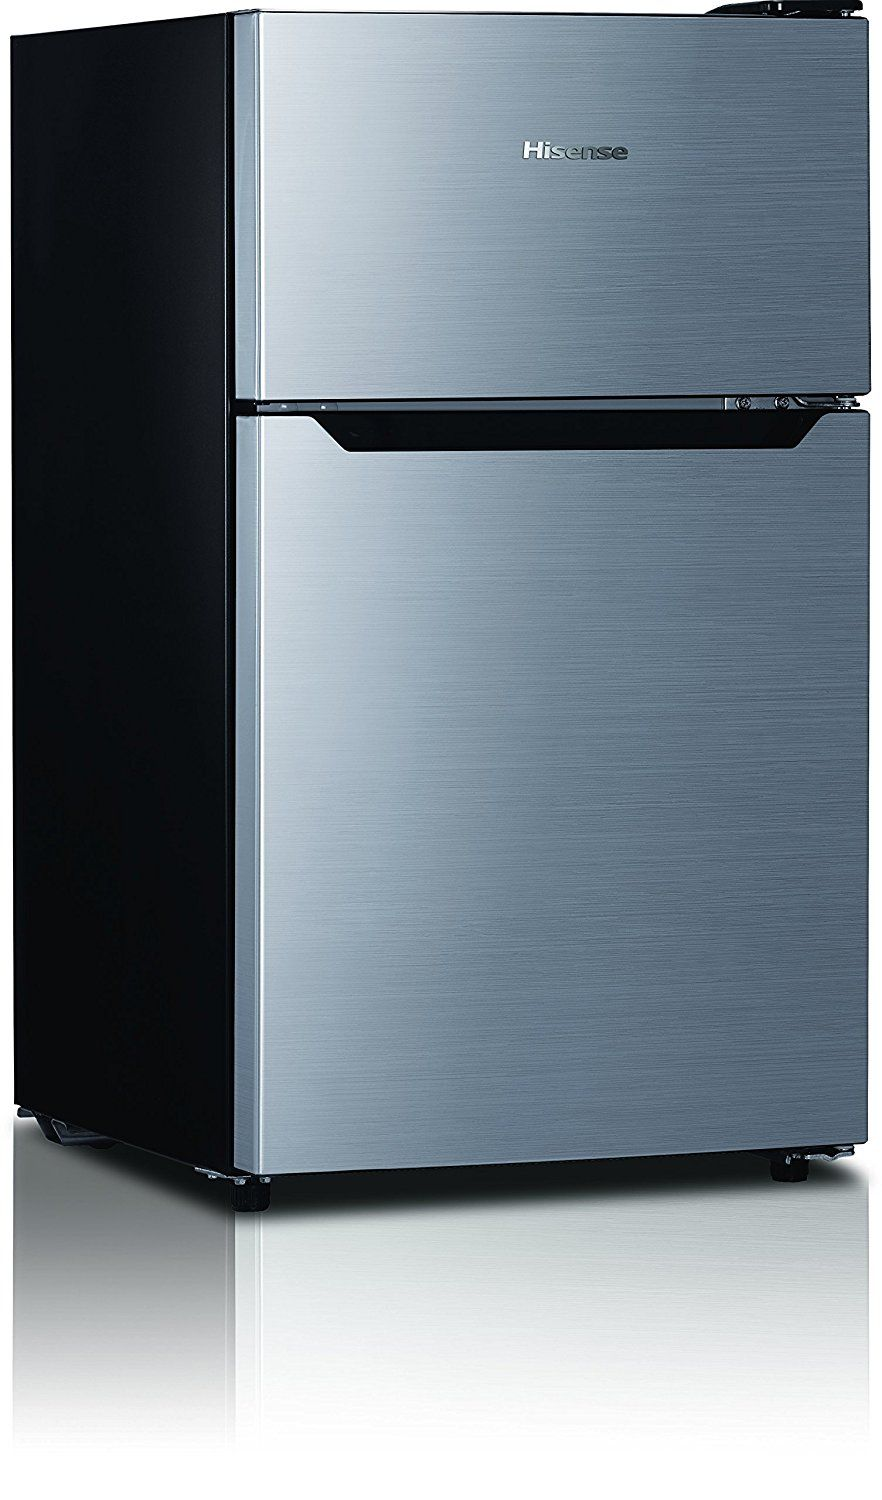 Hisense Rt33d6bae Compact Refrigerator With Double Door Top